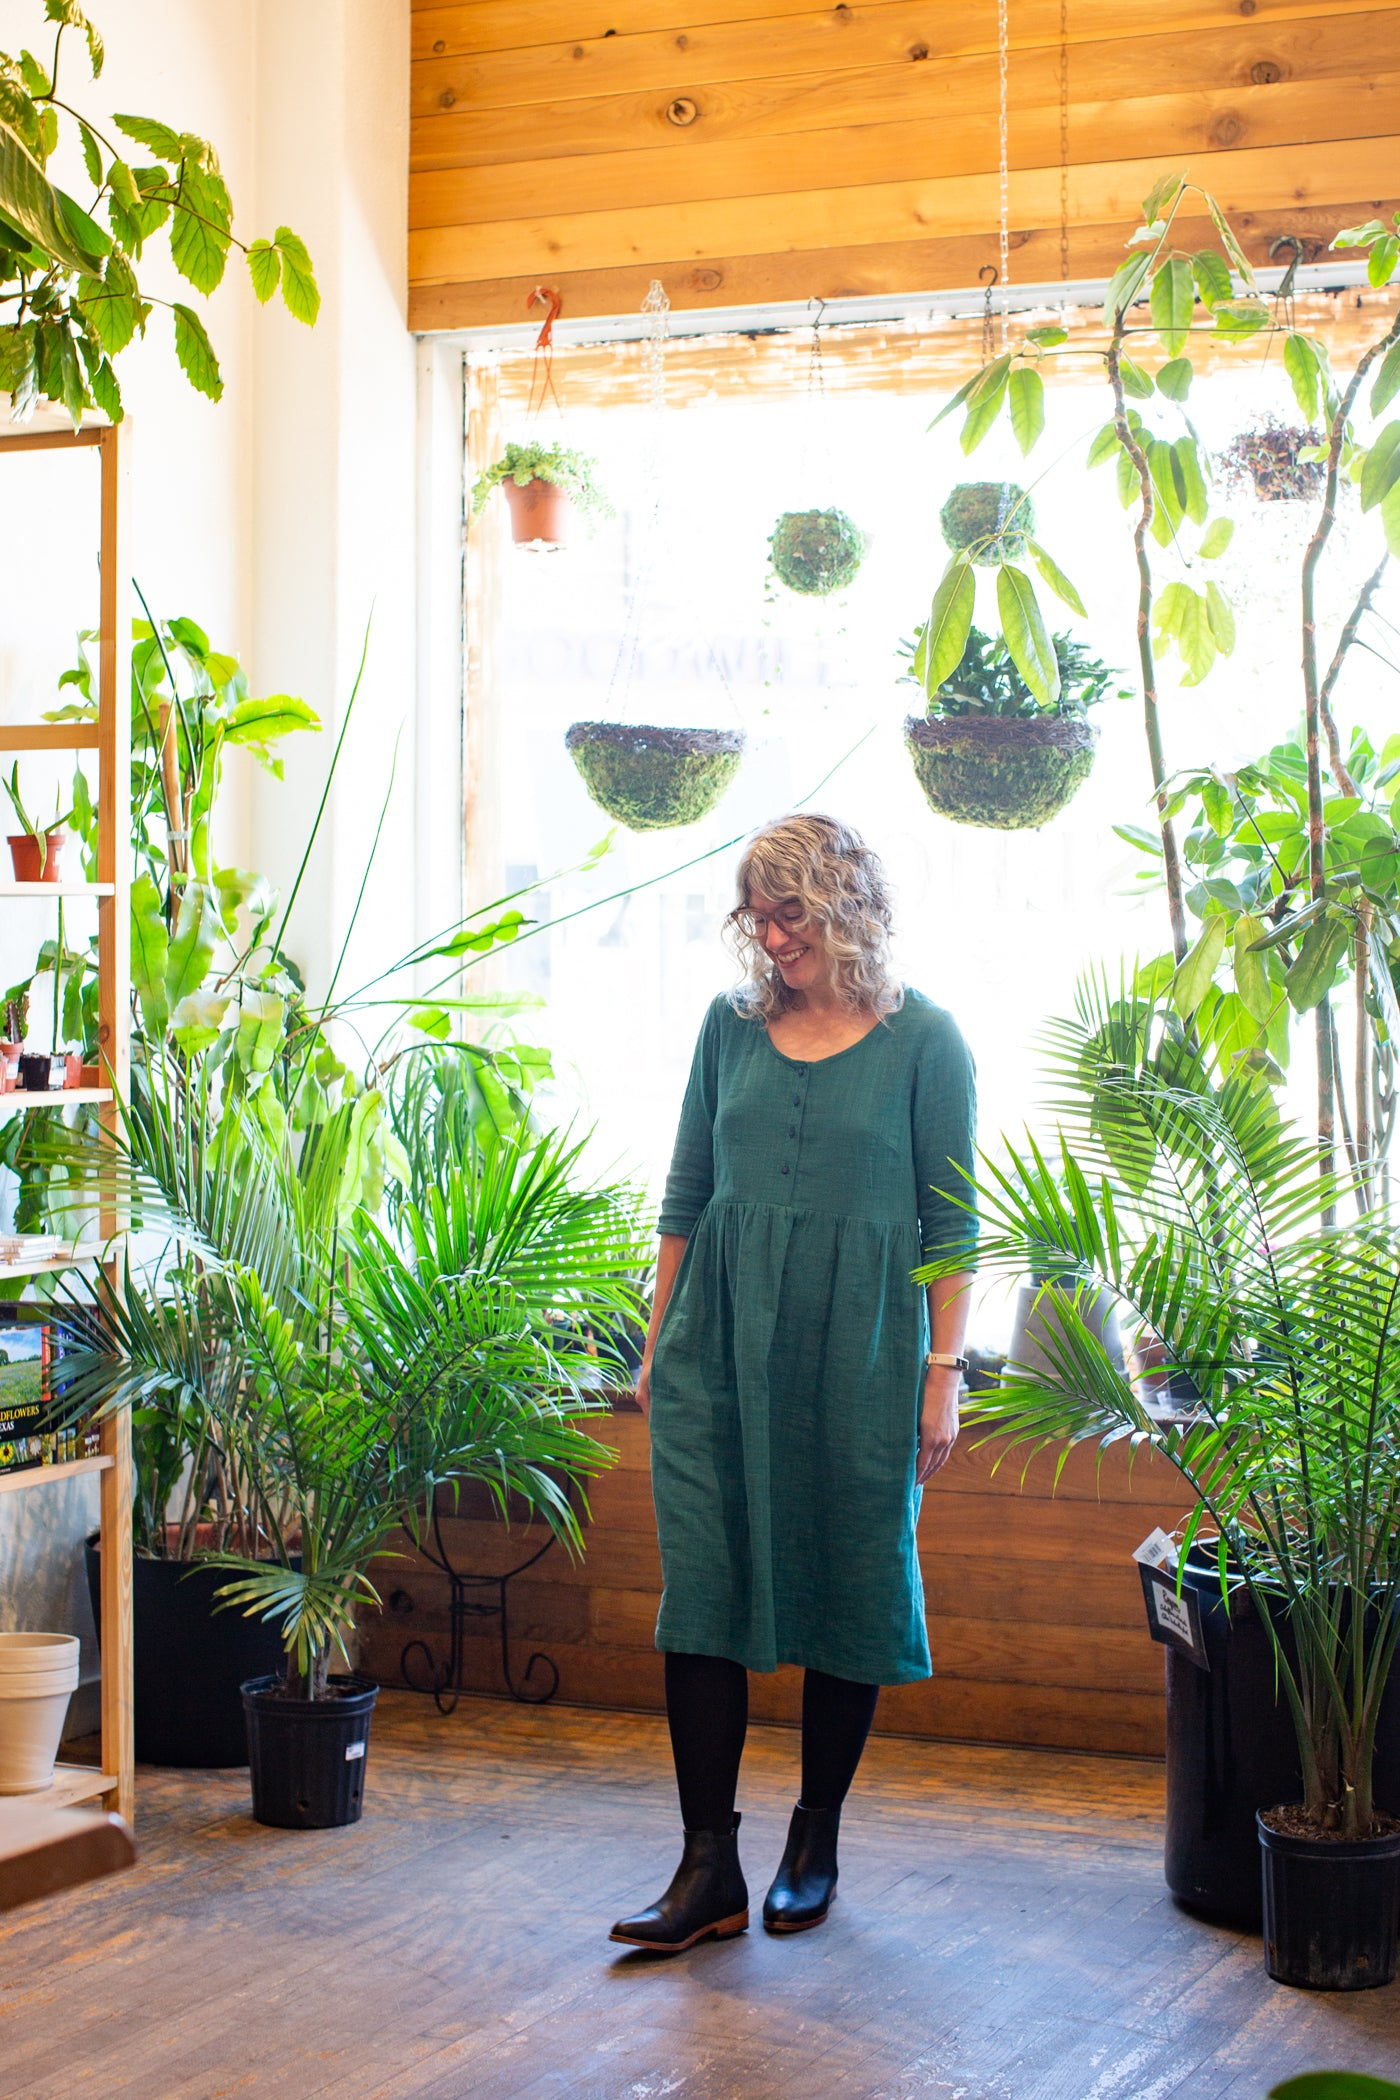 Jaime standing in front of a large window in a plant shop with sun filtering in.  Jaime is wearing a spruce linen dress, black leggings and shoes.  Jaime is surrounded by green plants.